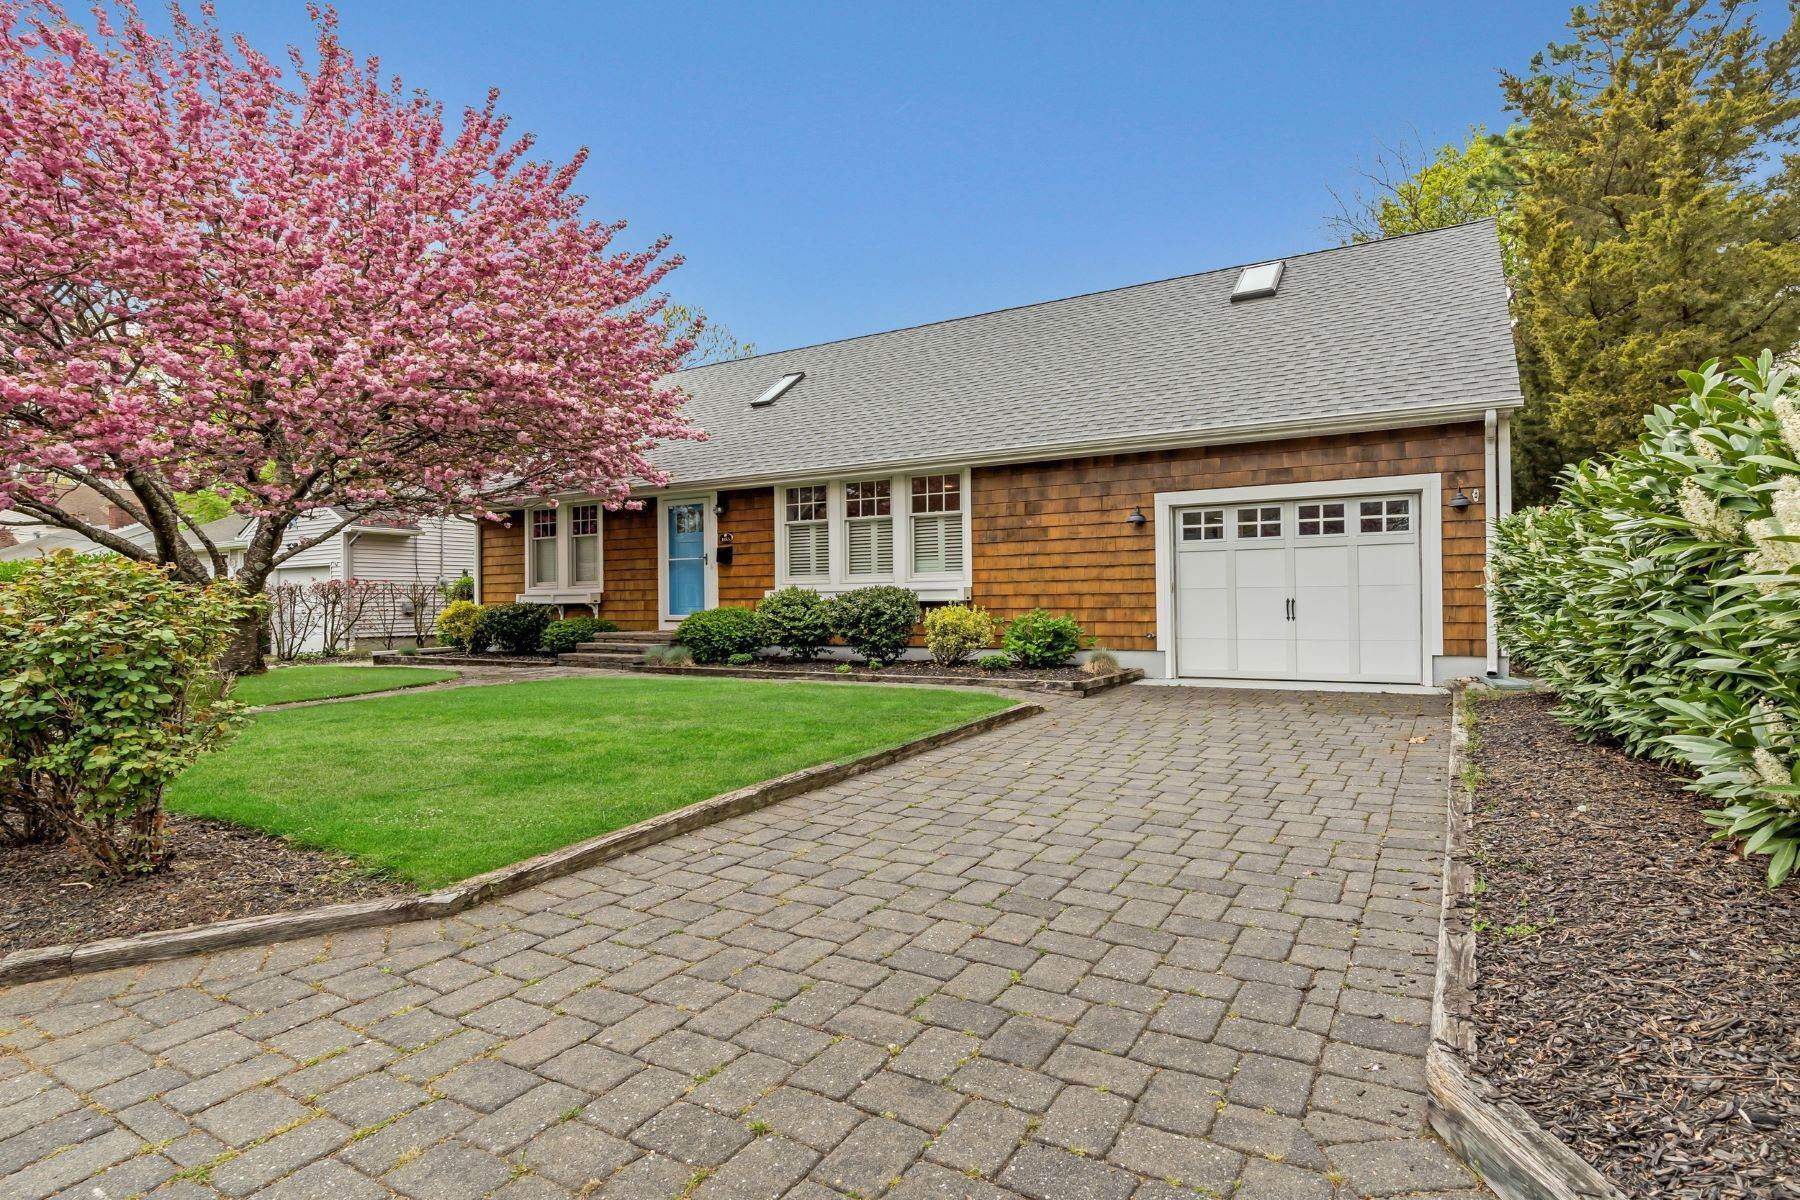 Single Family Homes for Sale at Picture Perfect 1153 Pine Bluff Avenue Point Pleasant, New Jersey 08742 United States